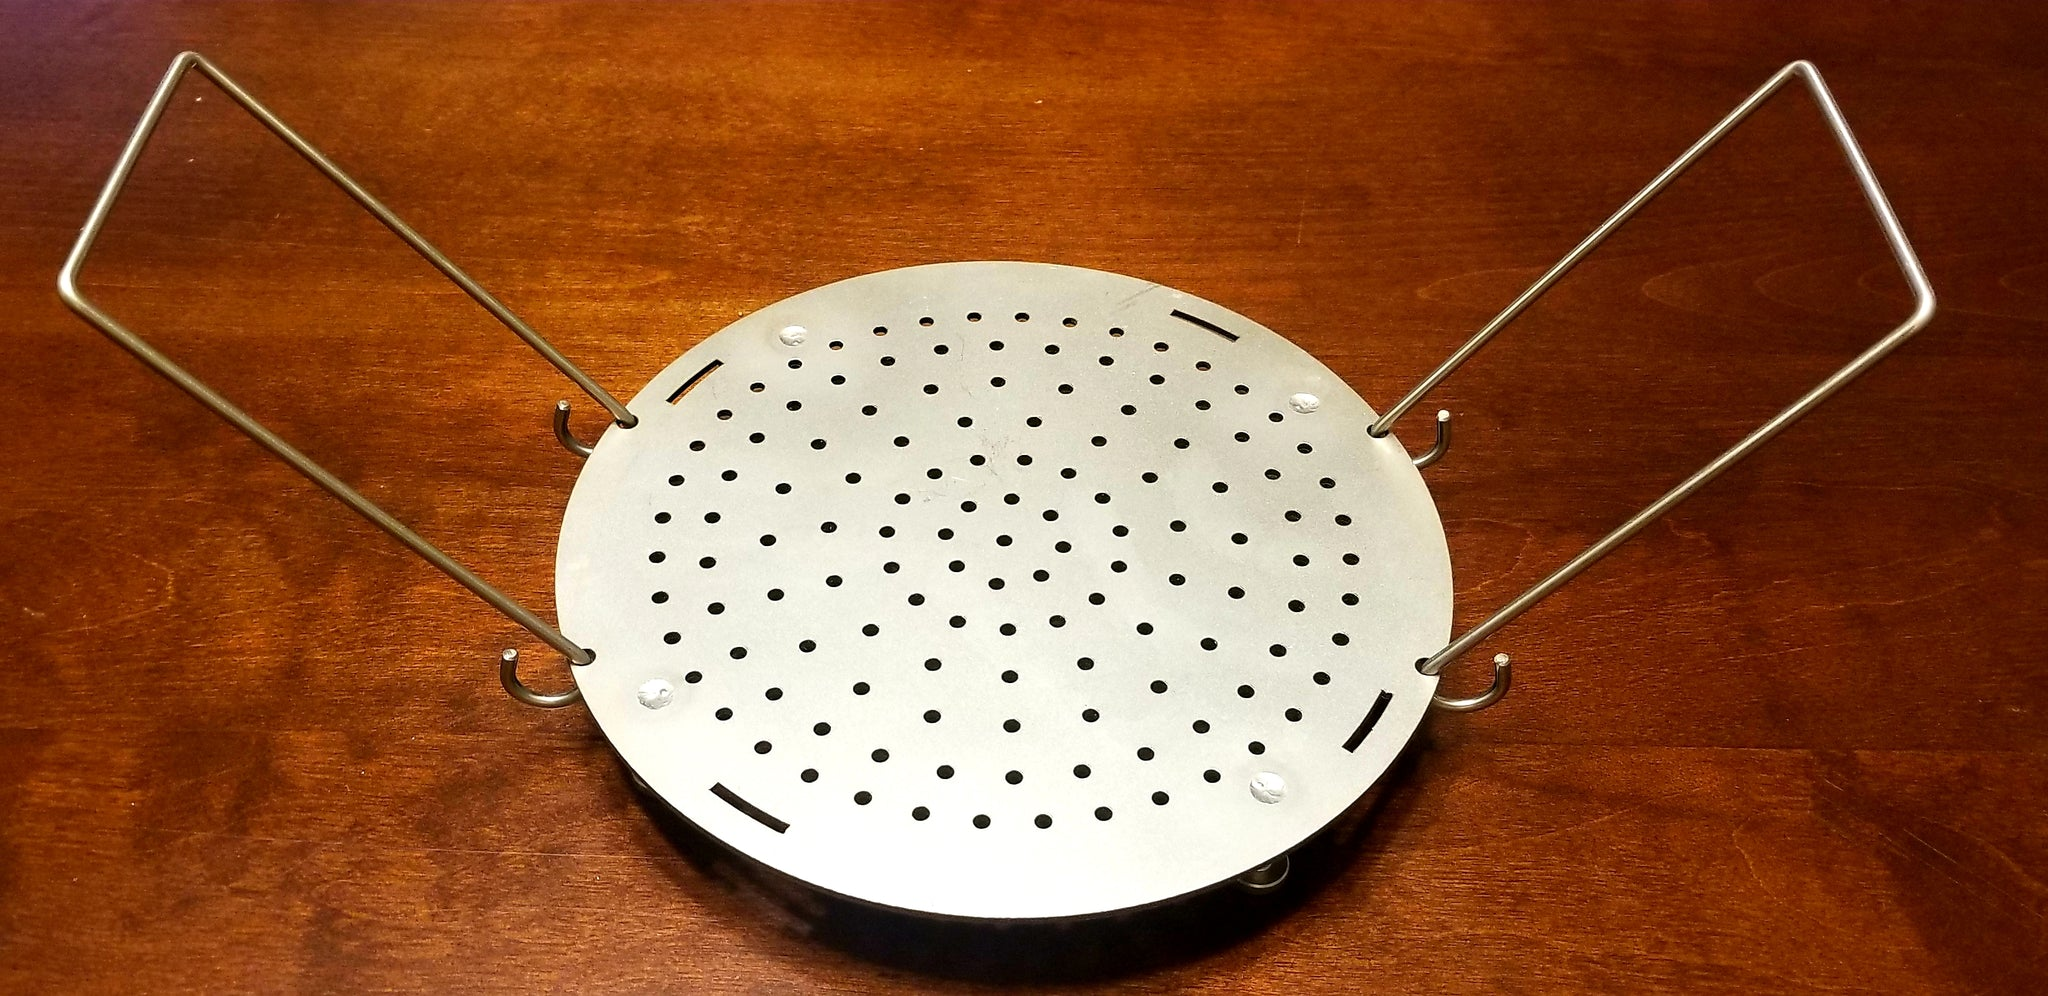 Stainless Steel Trivet